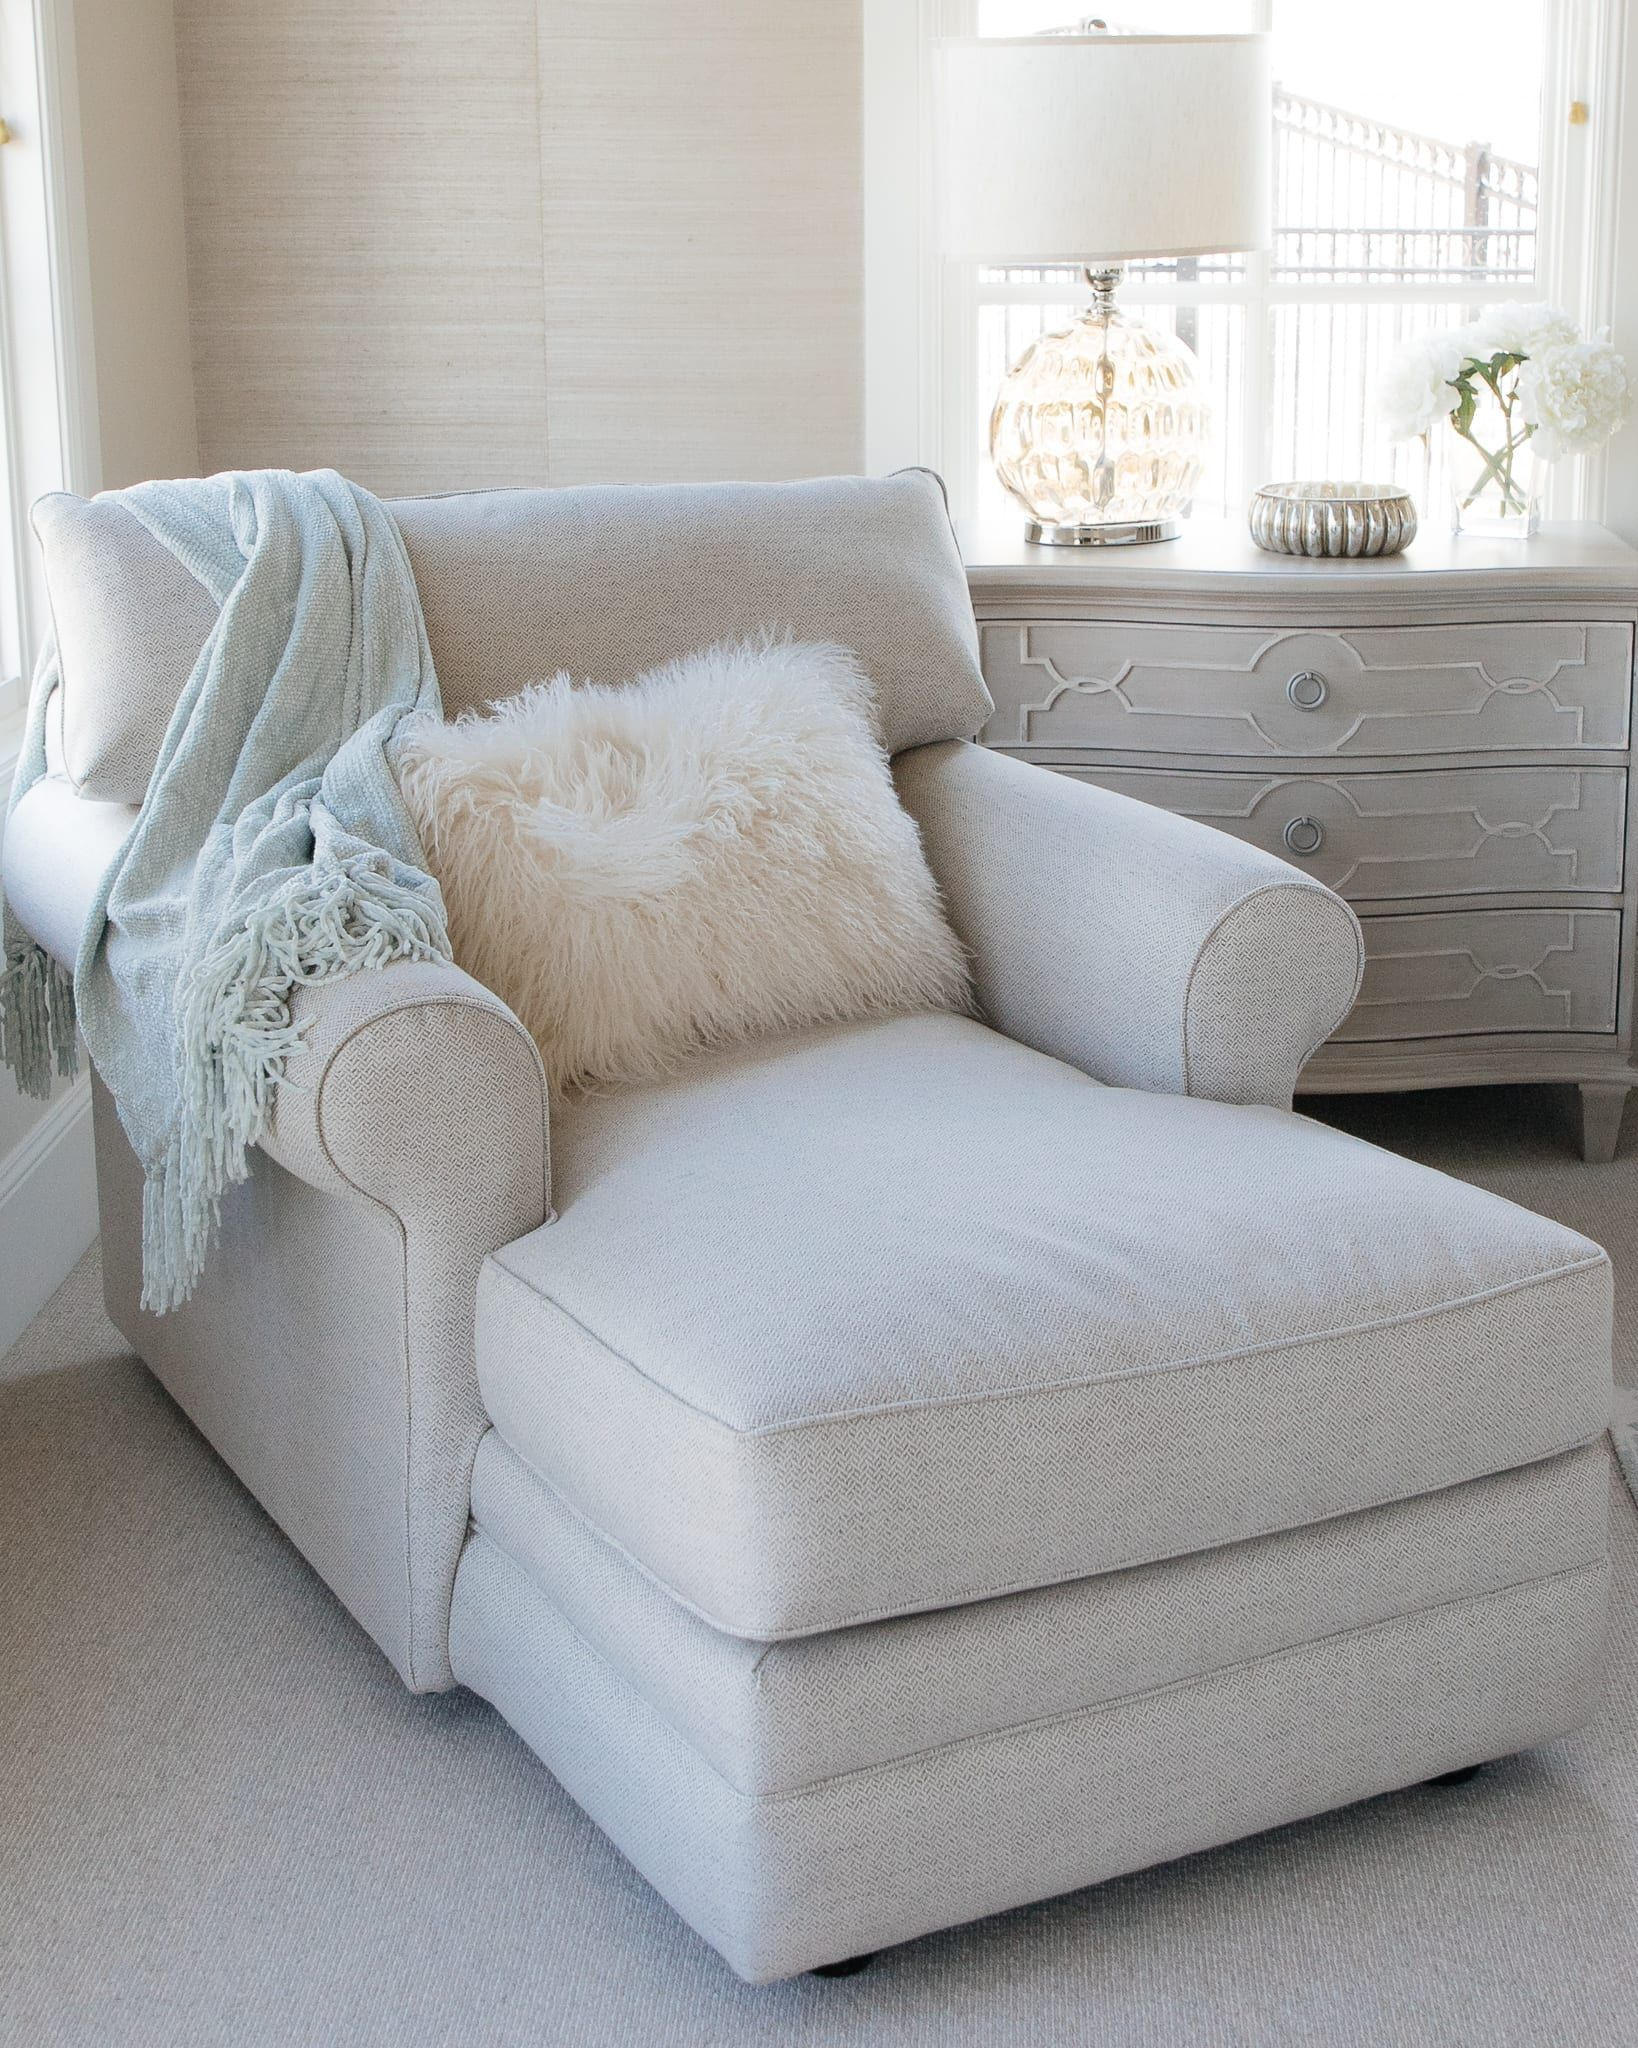 Home with Holly J | Master bedroom refresh, spring decor, how to style master bedroom, sea salt blue decor, neutral colors, wallpaper, gold tray, faux flowers, bedroom, home tour, home decor, chaise lounge chair, accent pillows, bedroom update, neutral patterns in the home, dream bedroom